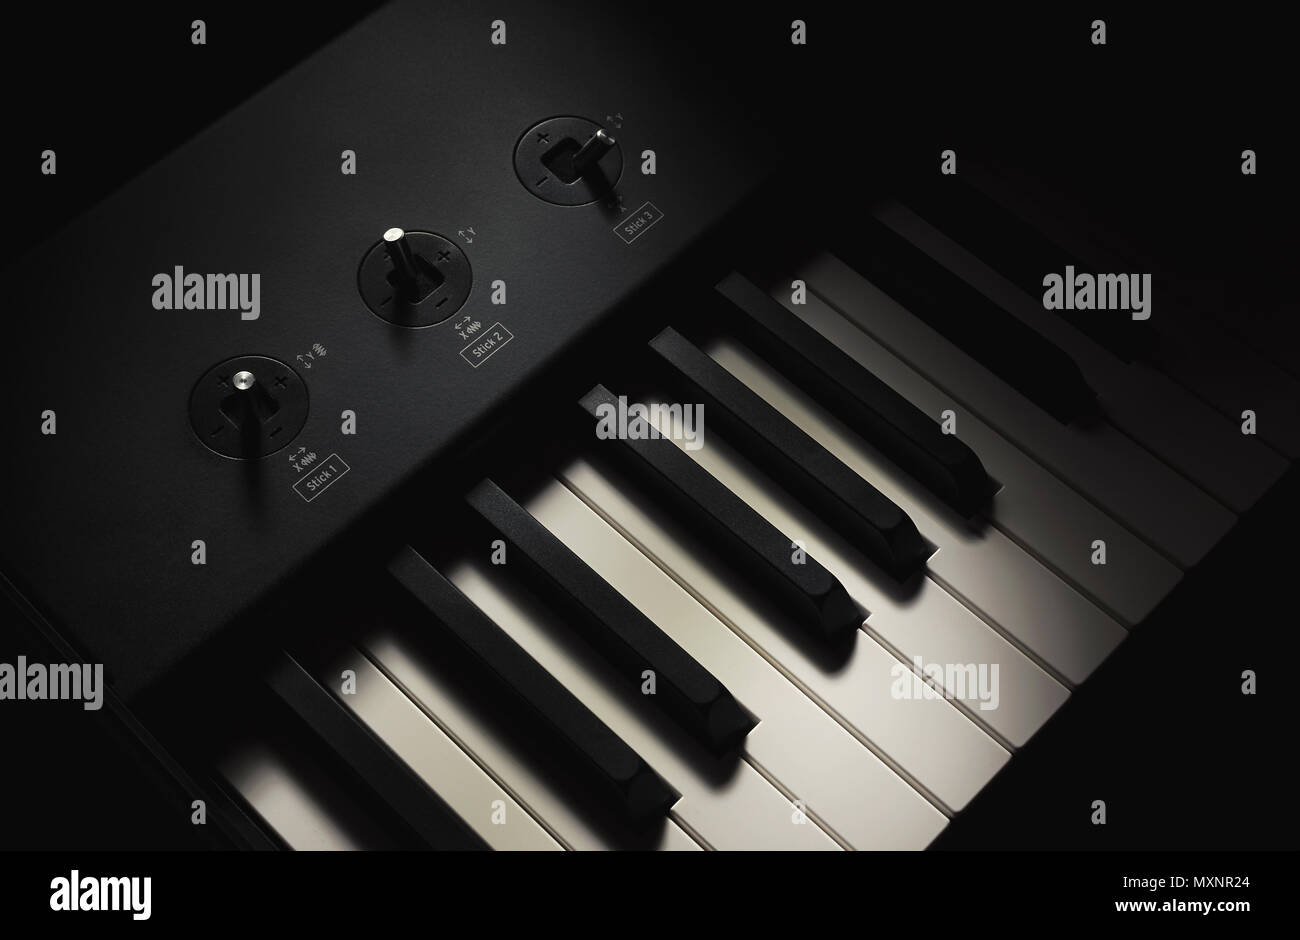 Black and white keys and controller sticks, part of modern midi keyboard. - Stock Image